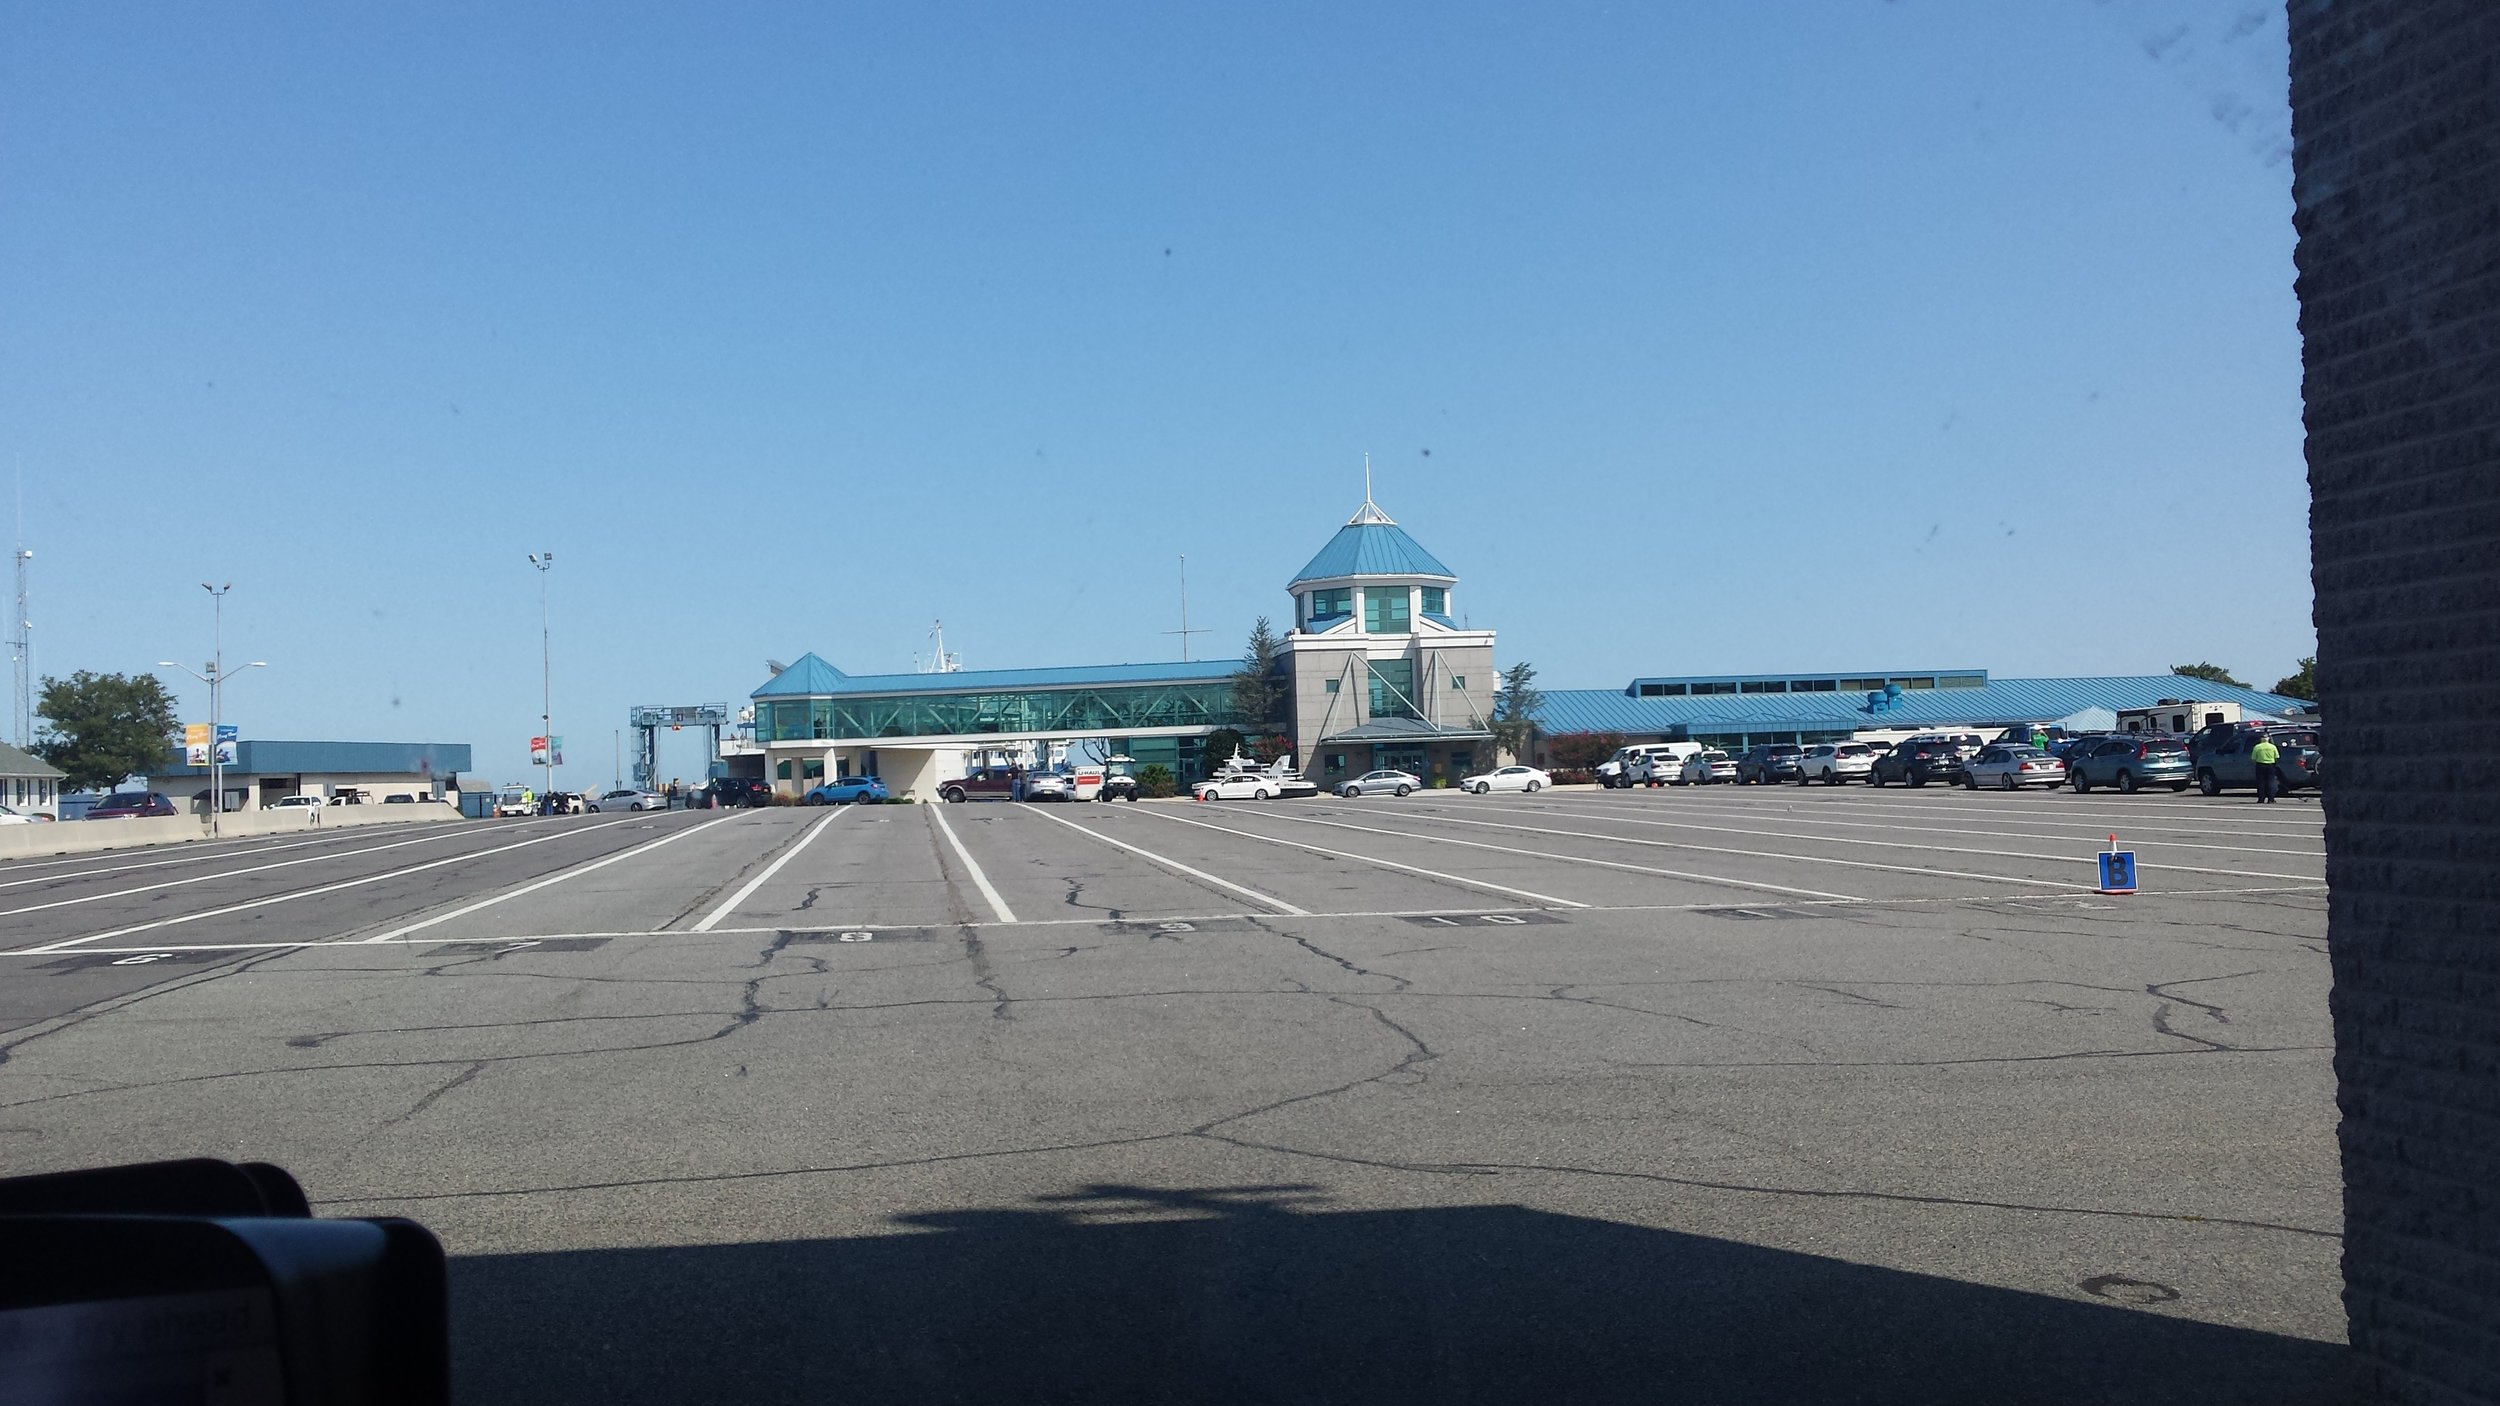 We drove the RV right onto the ferry along with 130 others!